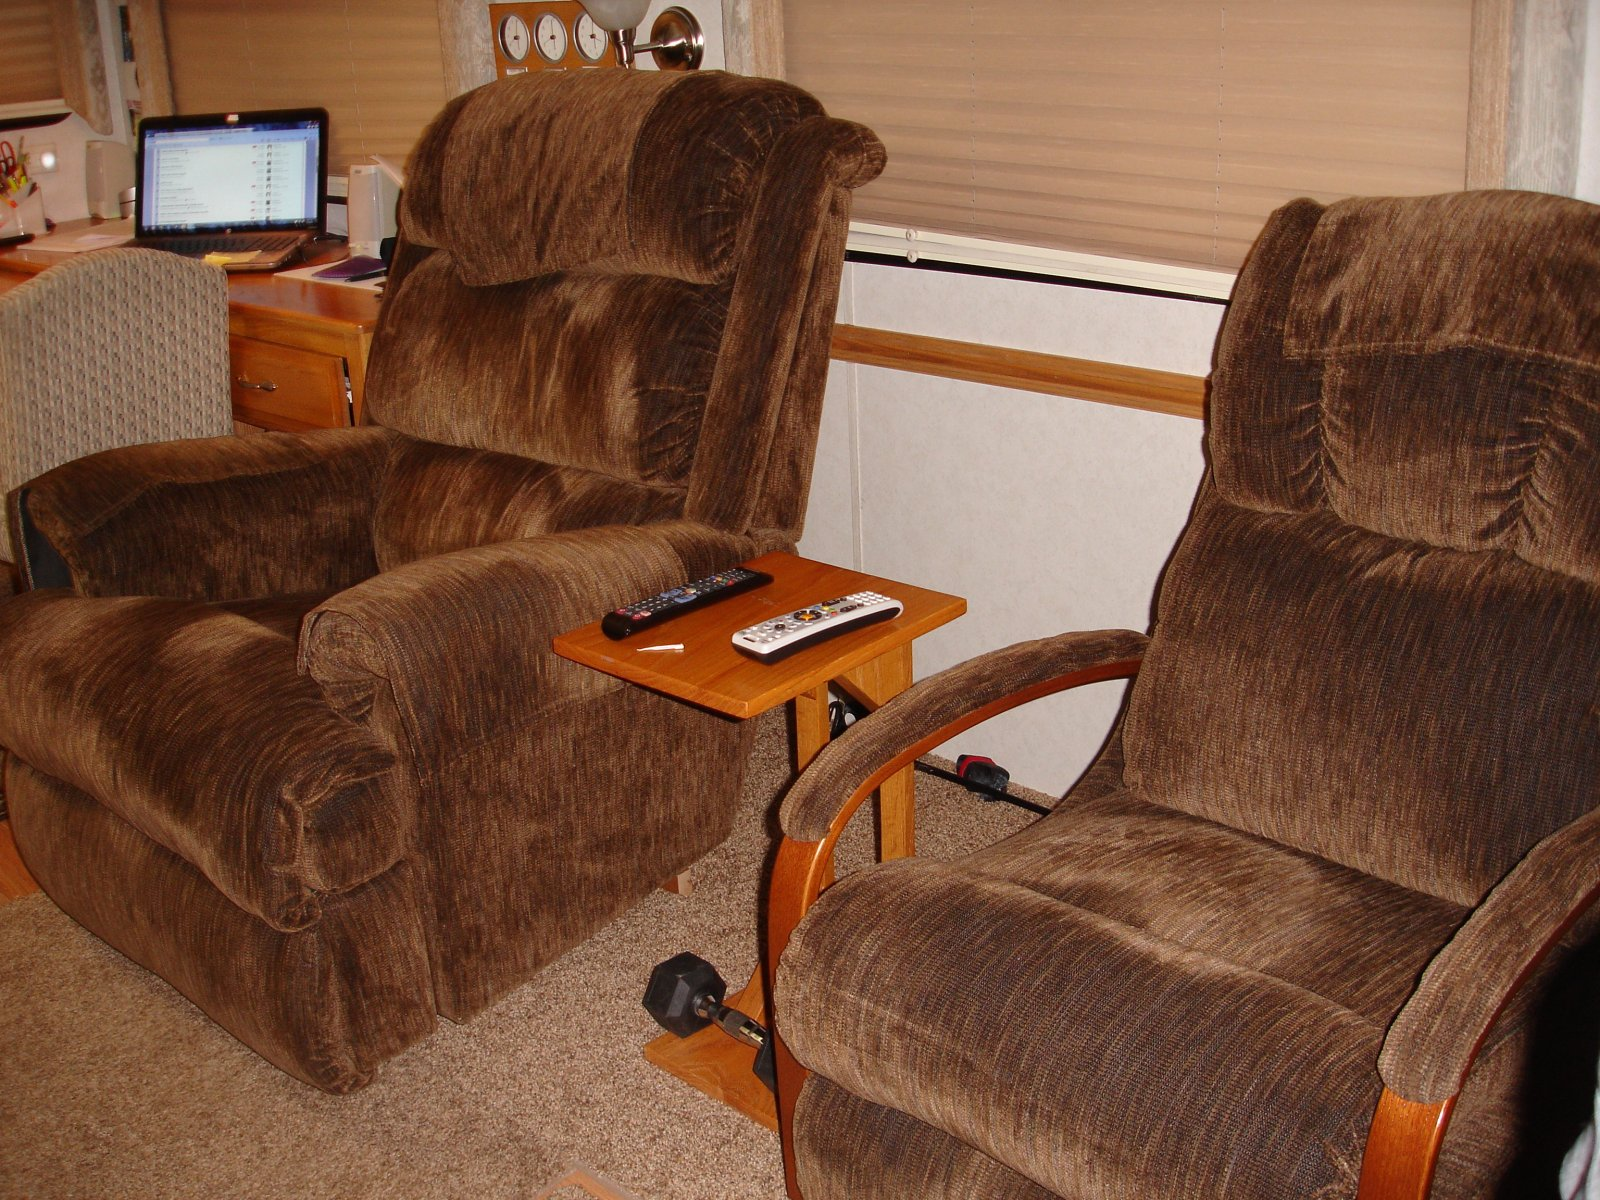 Click image for larger version  Name:Recliners.jpg Views:75 Size:453.3 KB ID:112530